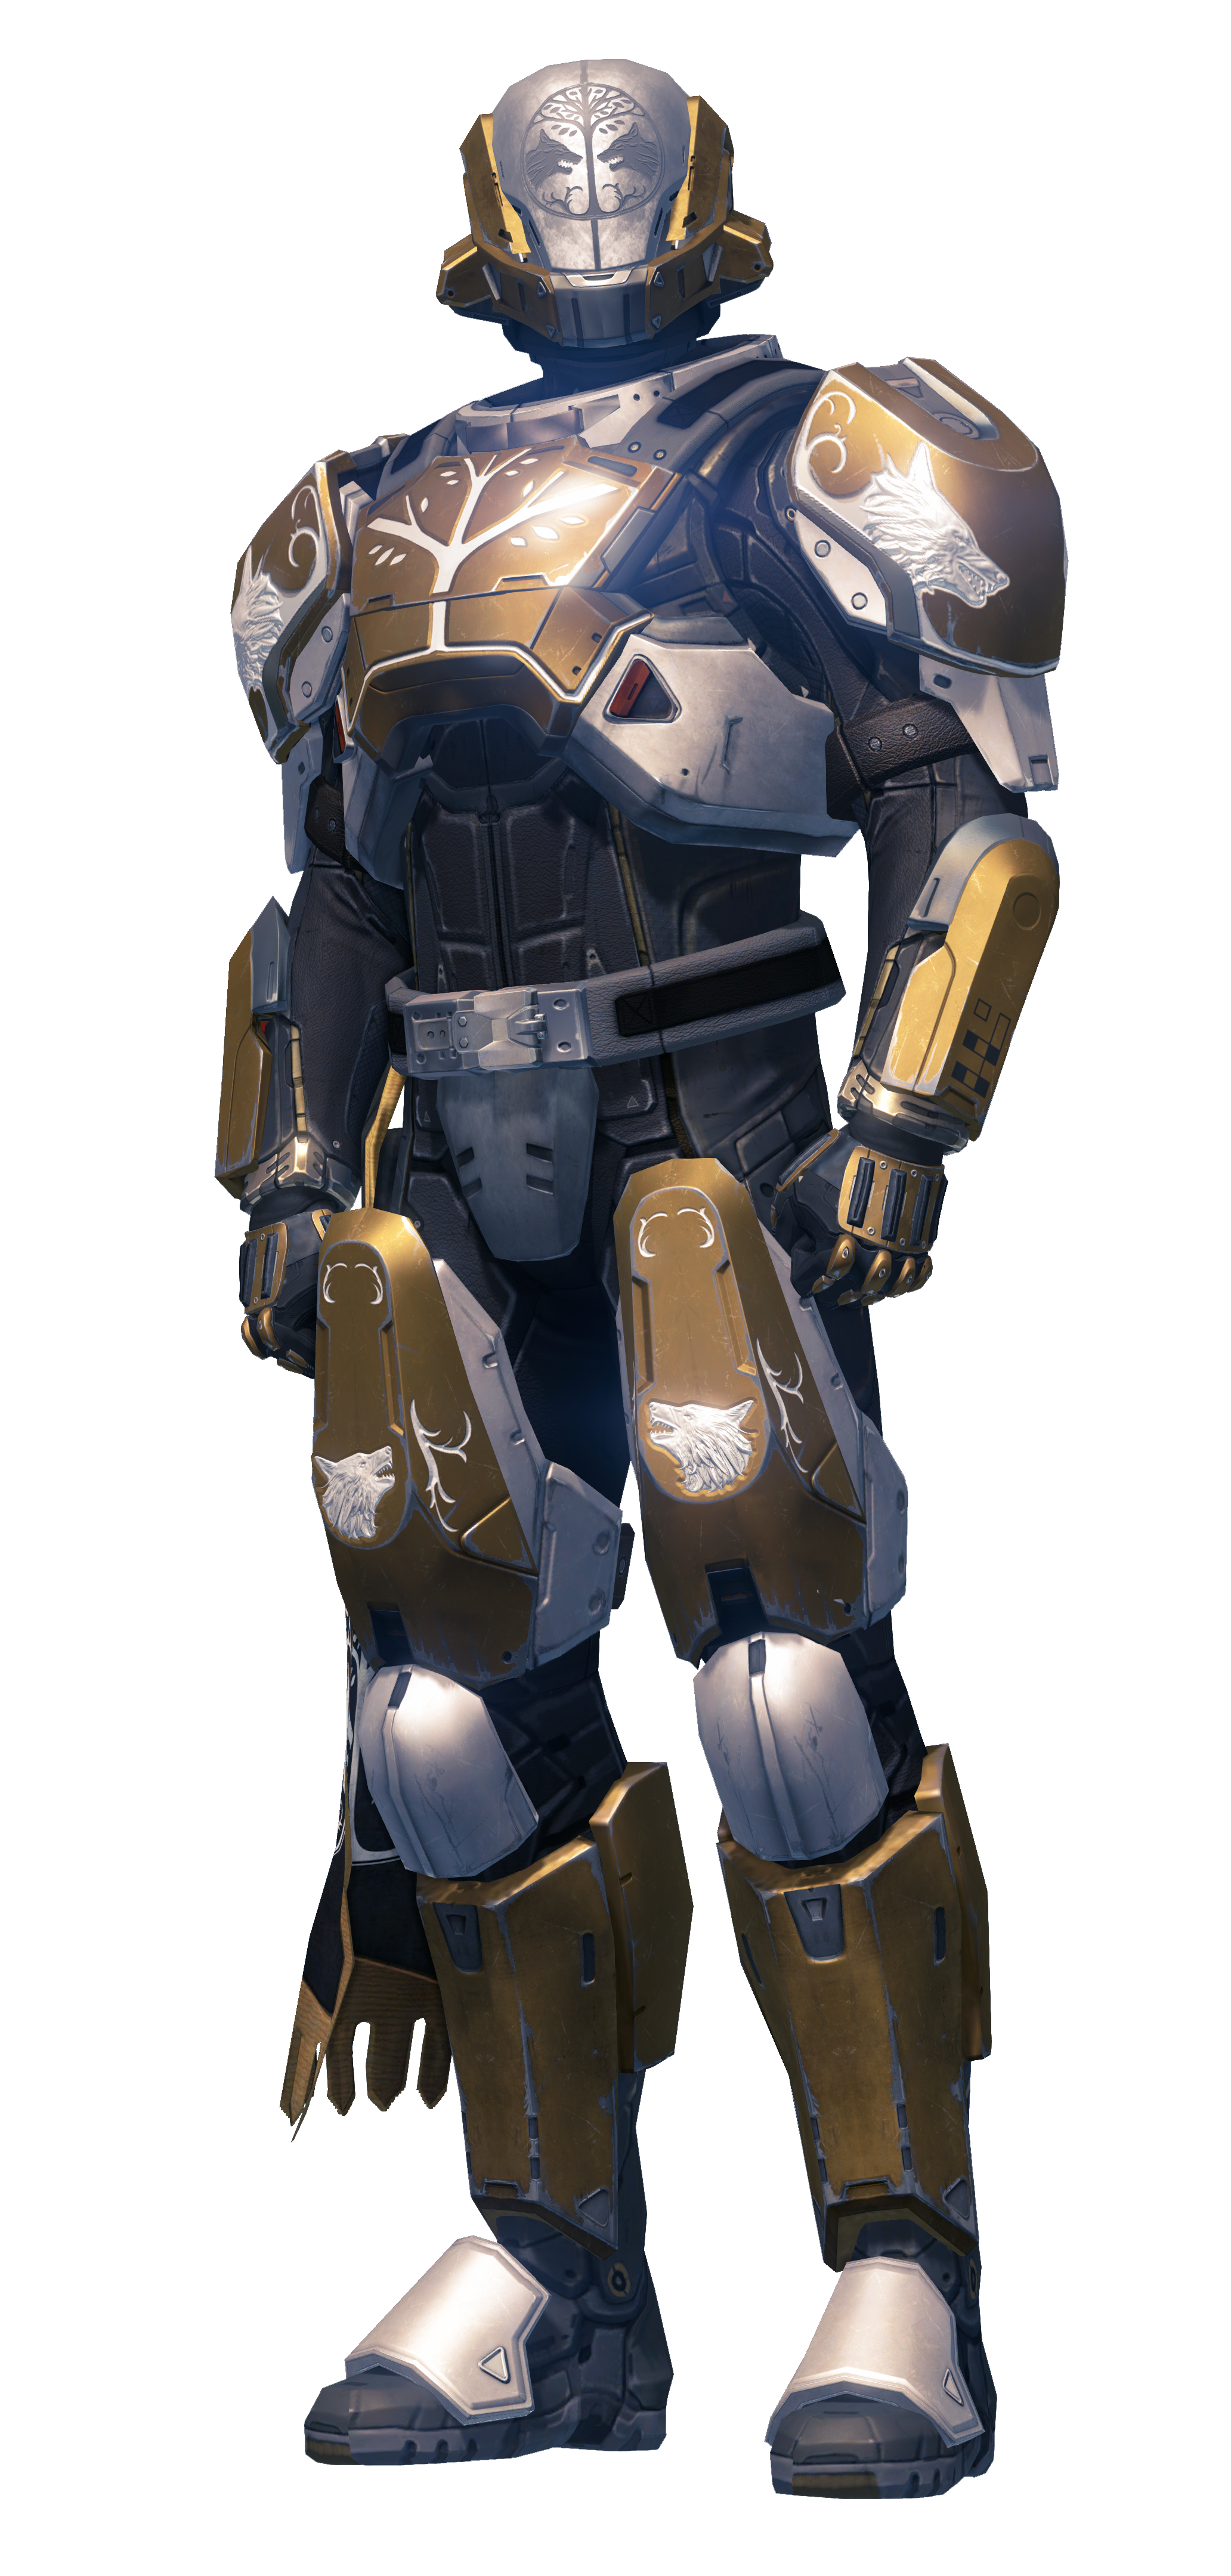 Destiny Game Png | www.imgkid.com - The Image Kid Has It!